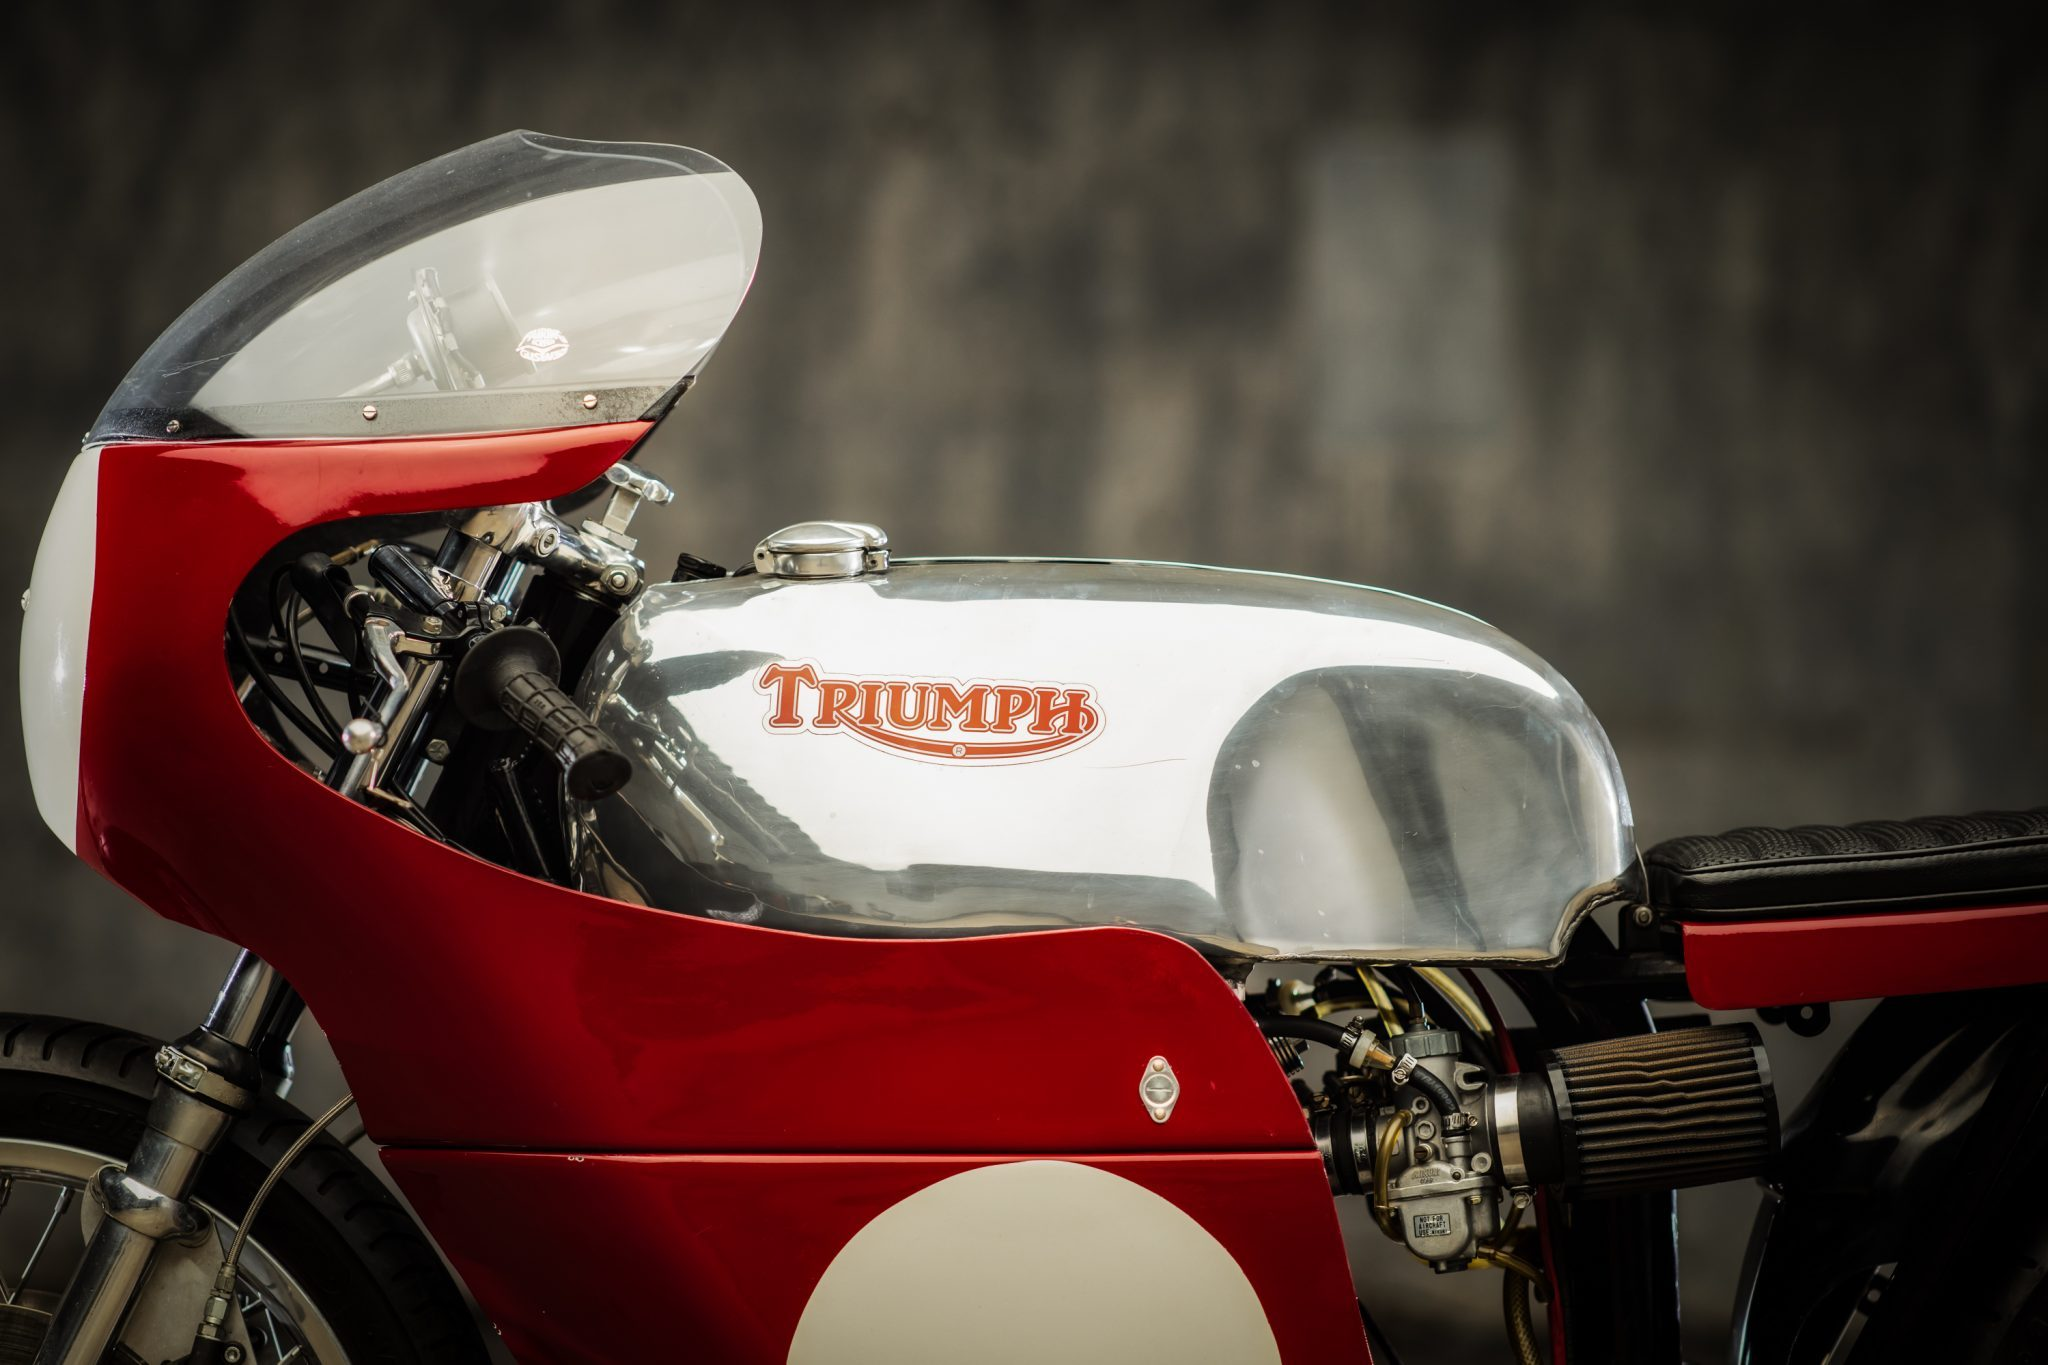 1972 Triumph trackmaster left side tank